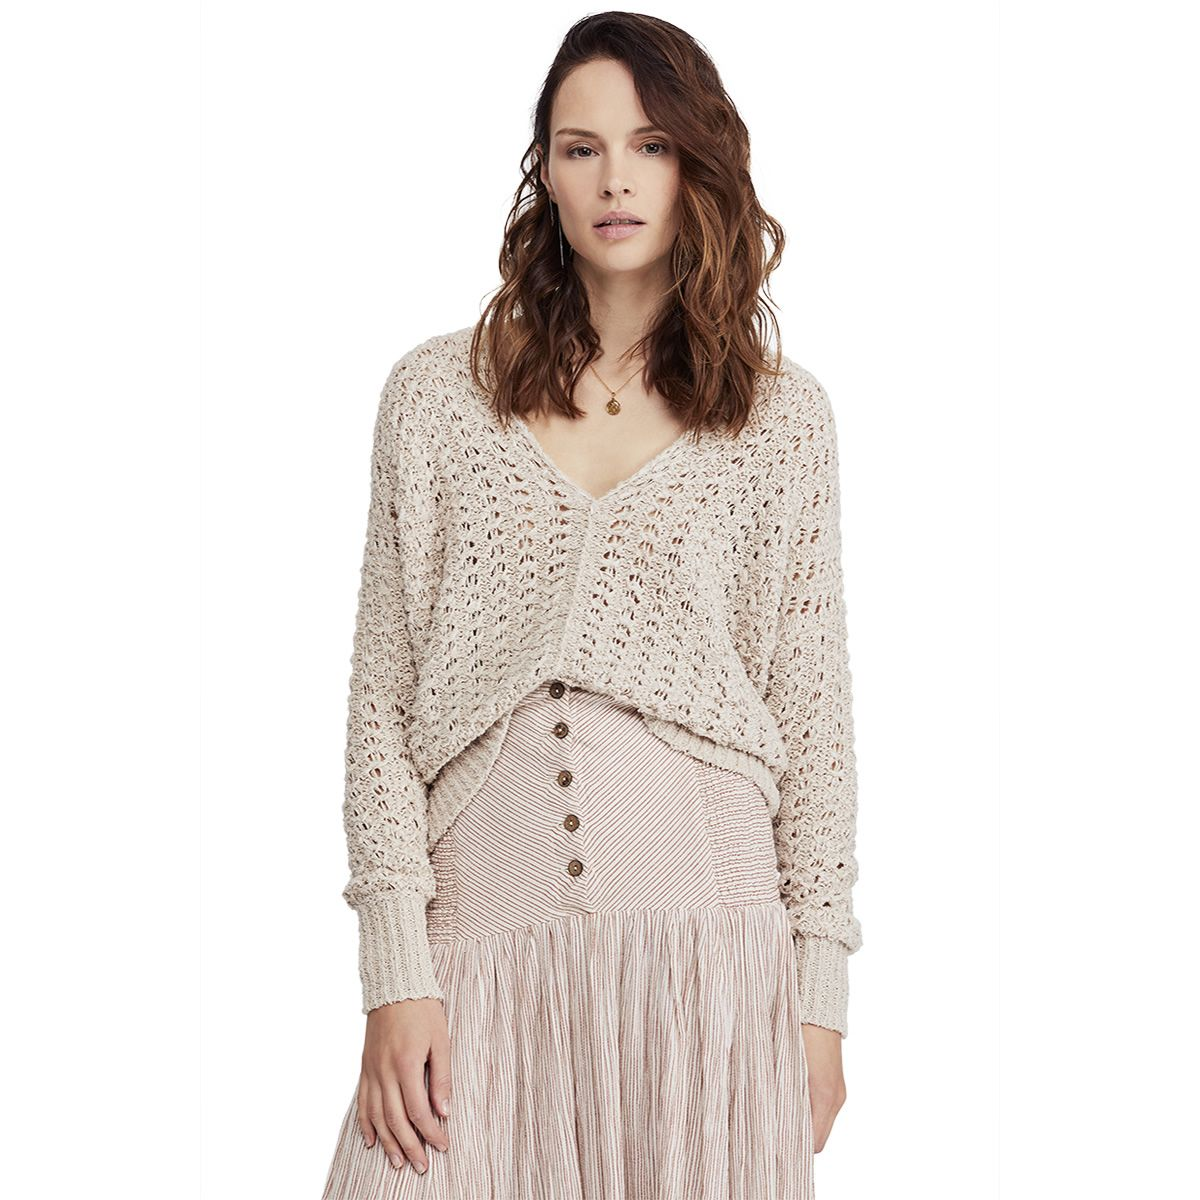 d69340bd7c2a Free People Clothing - Womens Apparel - Macy s